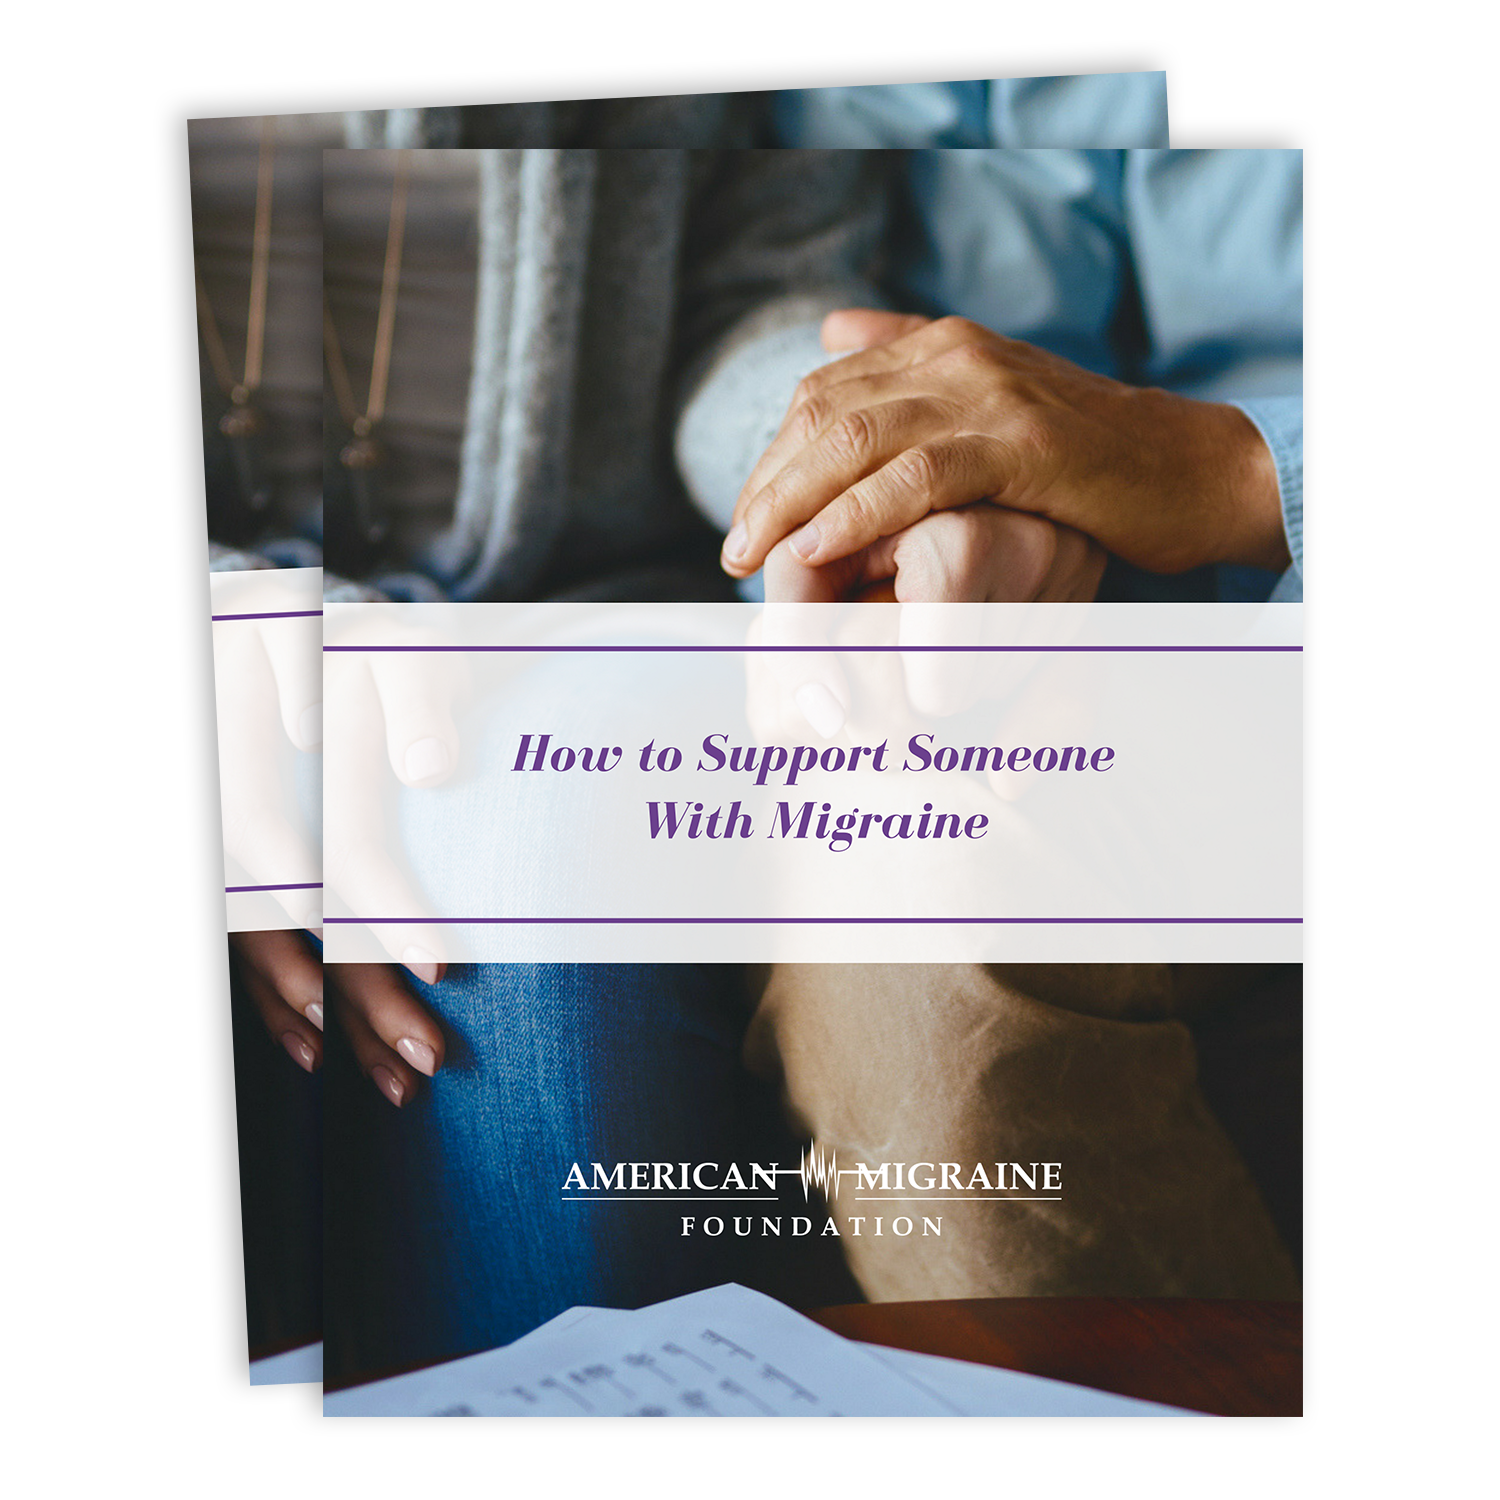 Download our guide on how to support someone with migraine.